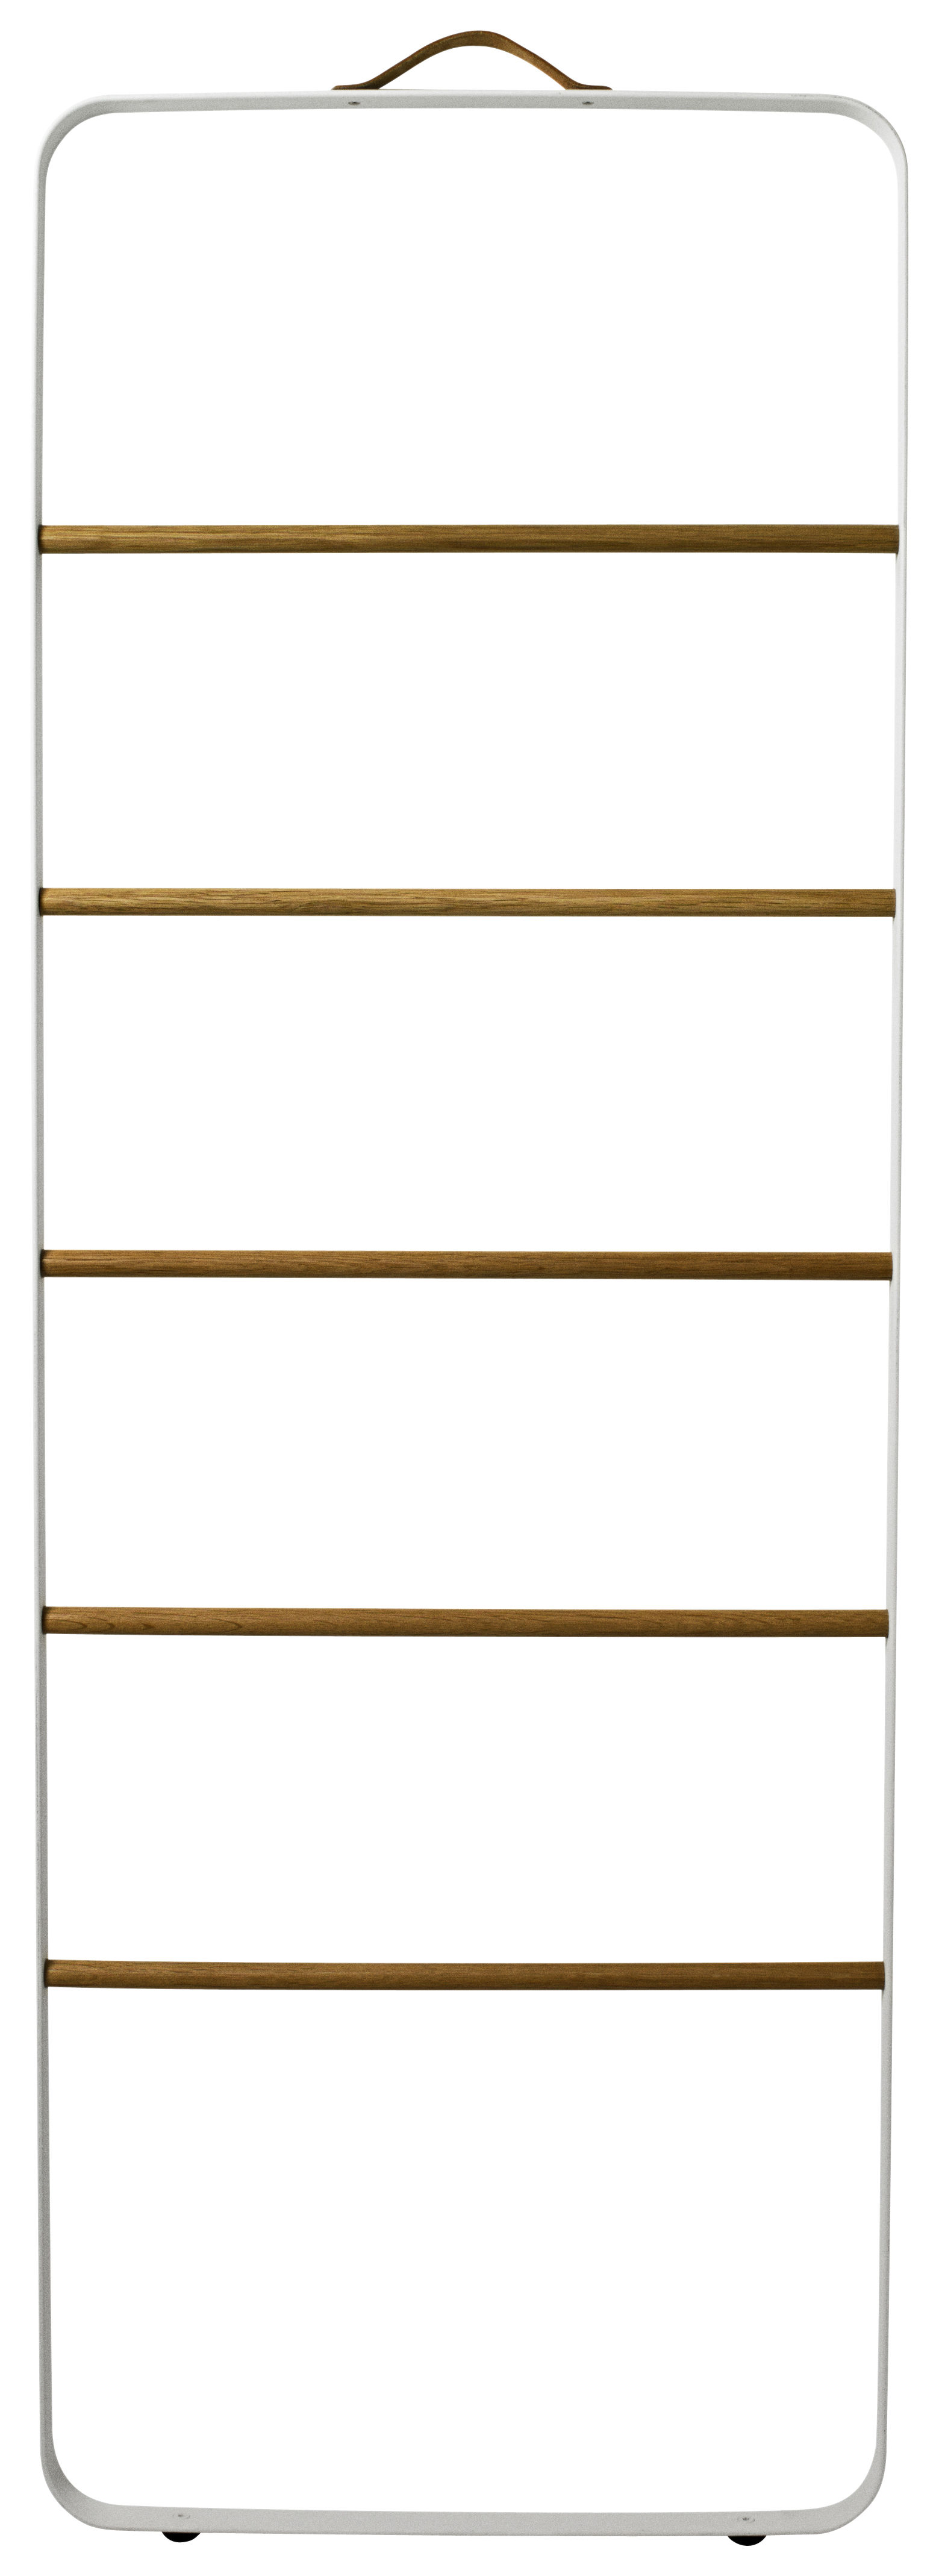 Furniture - Coat Racks & Pegs - Towel rail by Menu - White - Leather, Oak, Steel